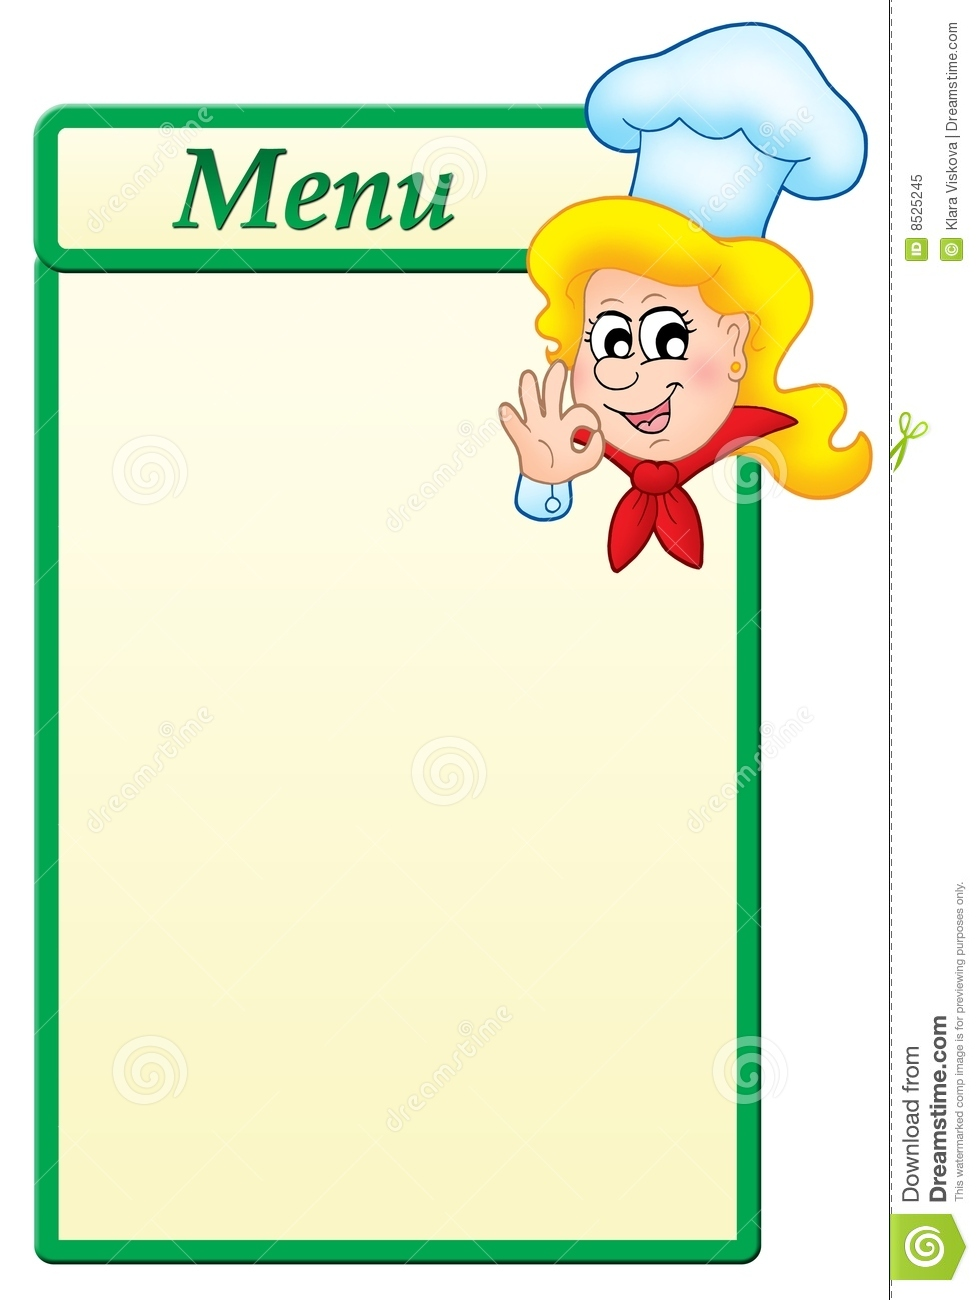 Menu Template With Cartoon Chef Woman Royalty Free Stock